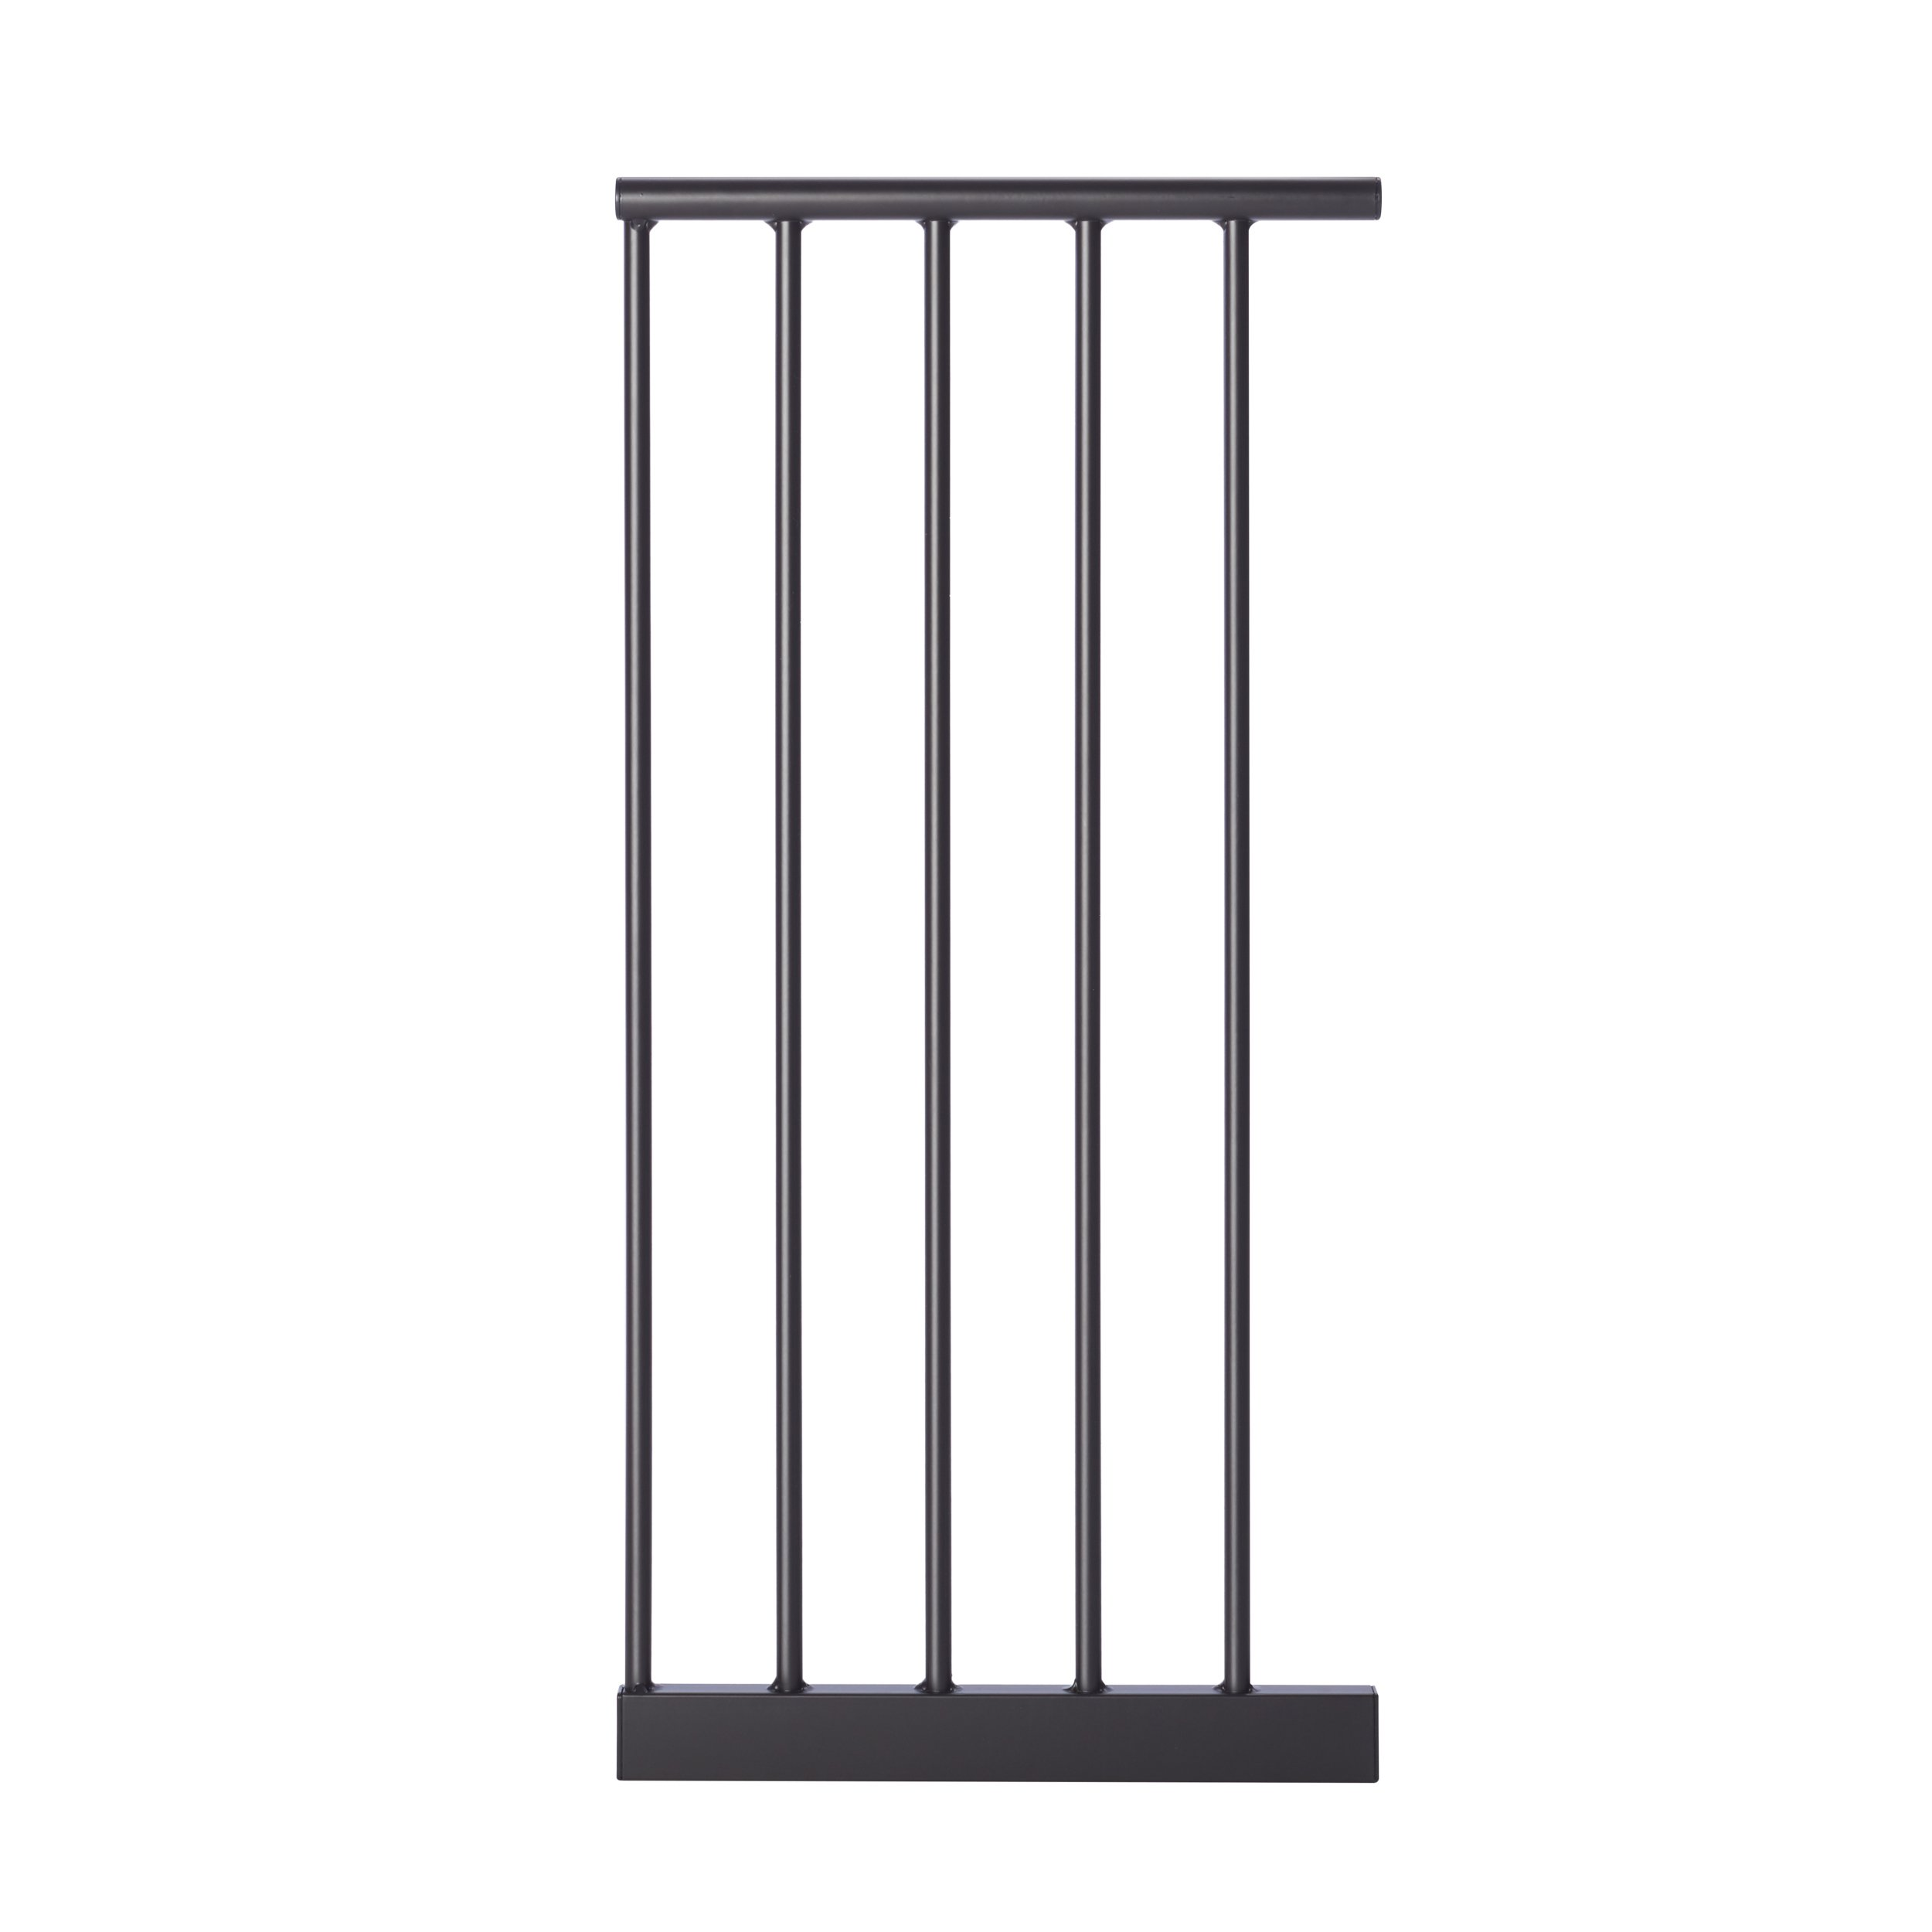 ''Portico Arch Gate 13.5 in. Extension'' by North States: 1 extension for''Portico Arch Gate'' (Adds up to 13.5'' width, 30'' tall, Bronze)